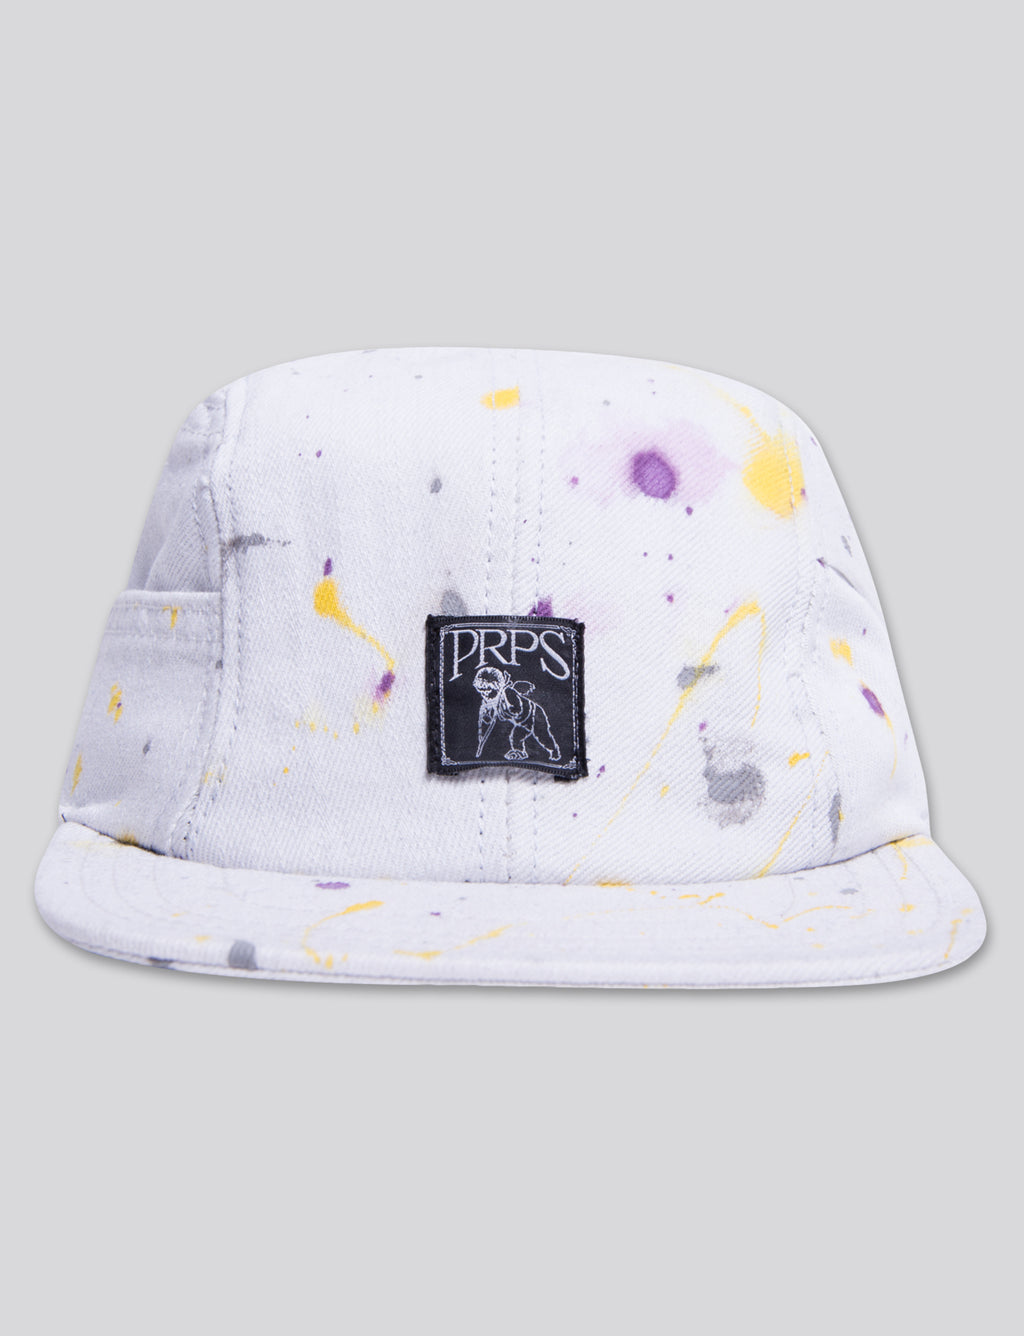 Prps - #13 White Denim 4 Panel Hat - Hat - Prps